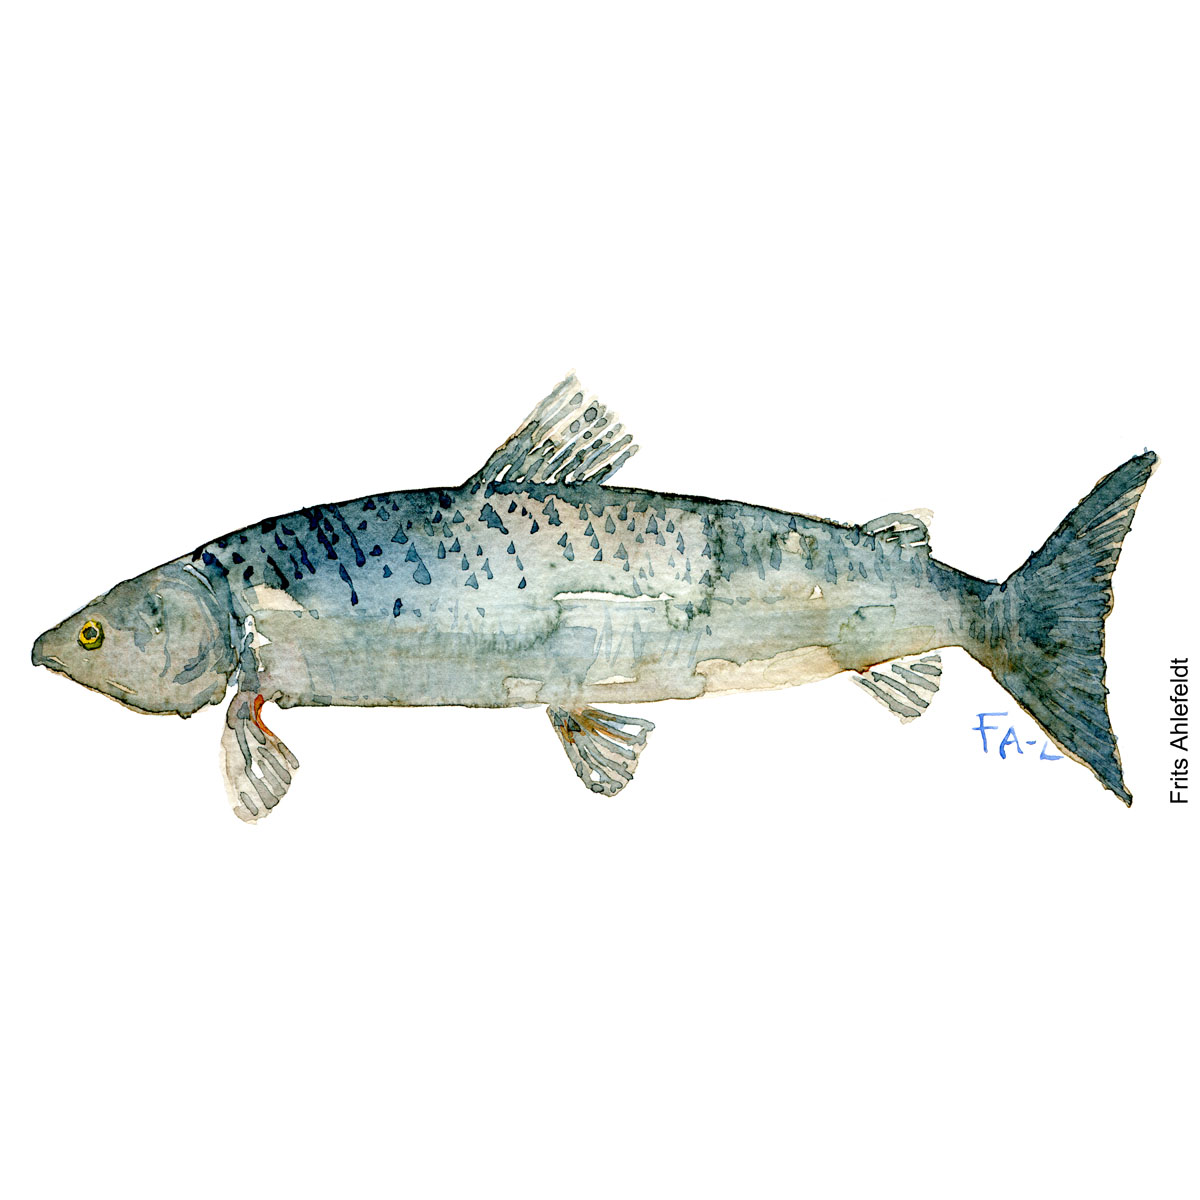 Fish sketch Fish watercolor illustration by frits Ahlefeldt